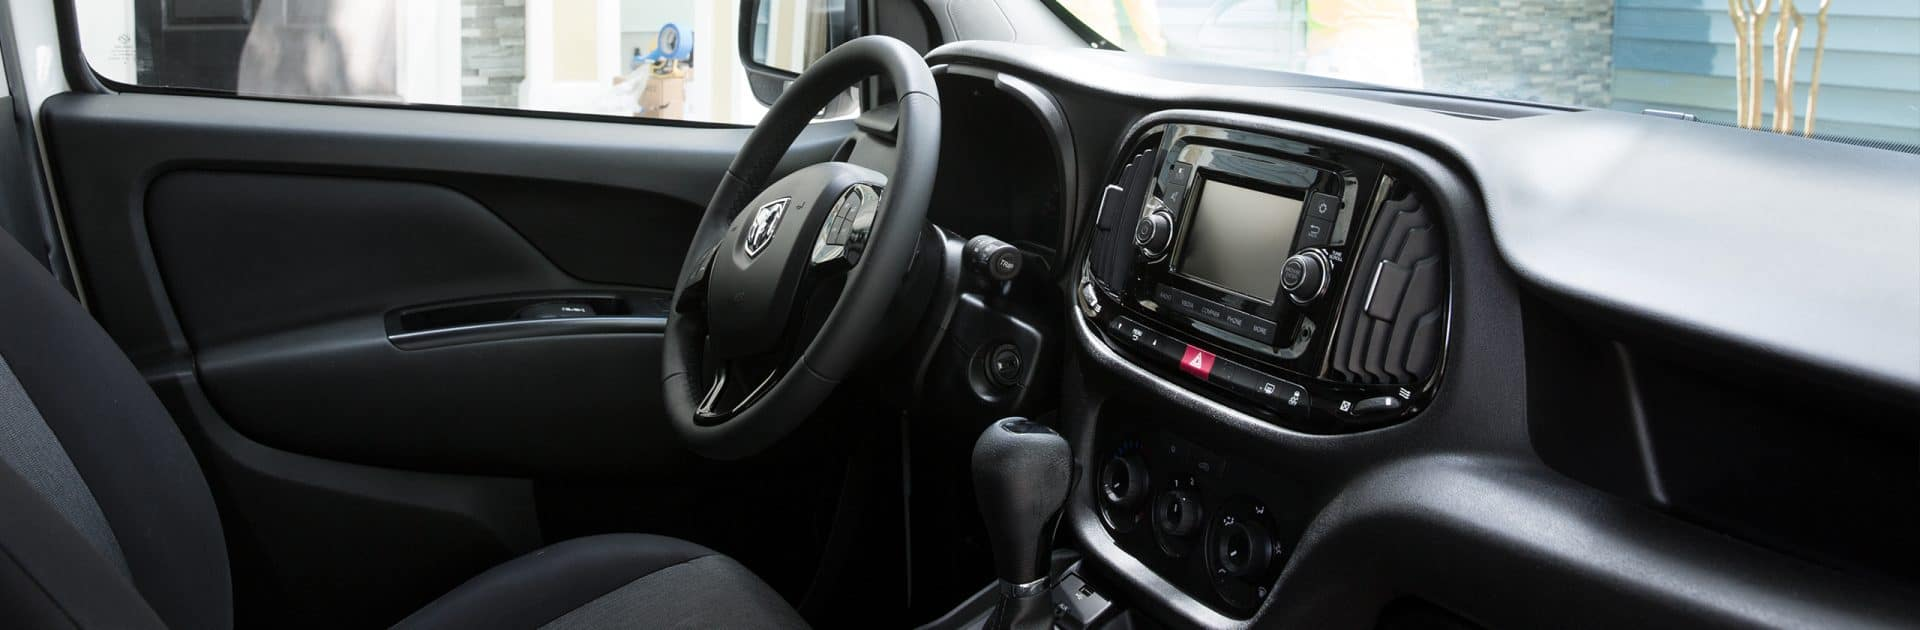 2018 Ram Trucks ProMaster City Interior Features